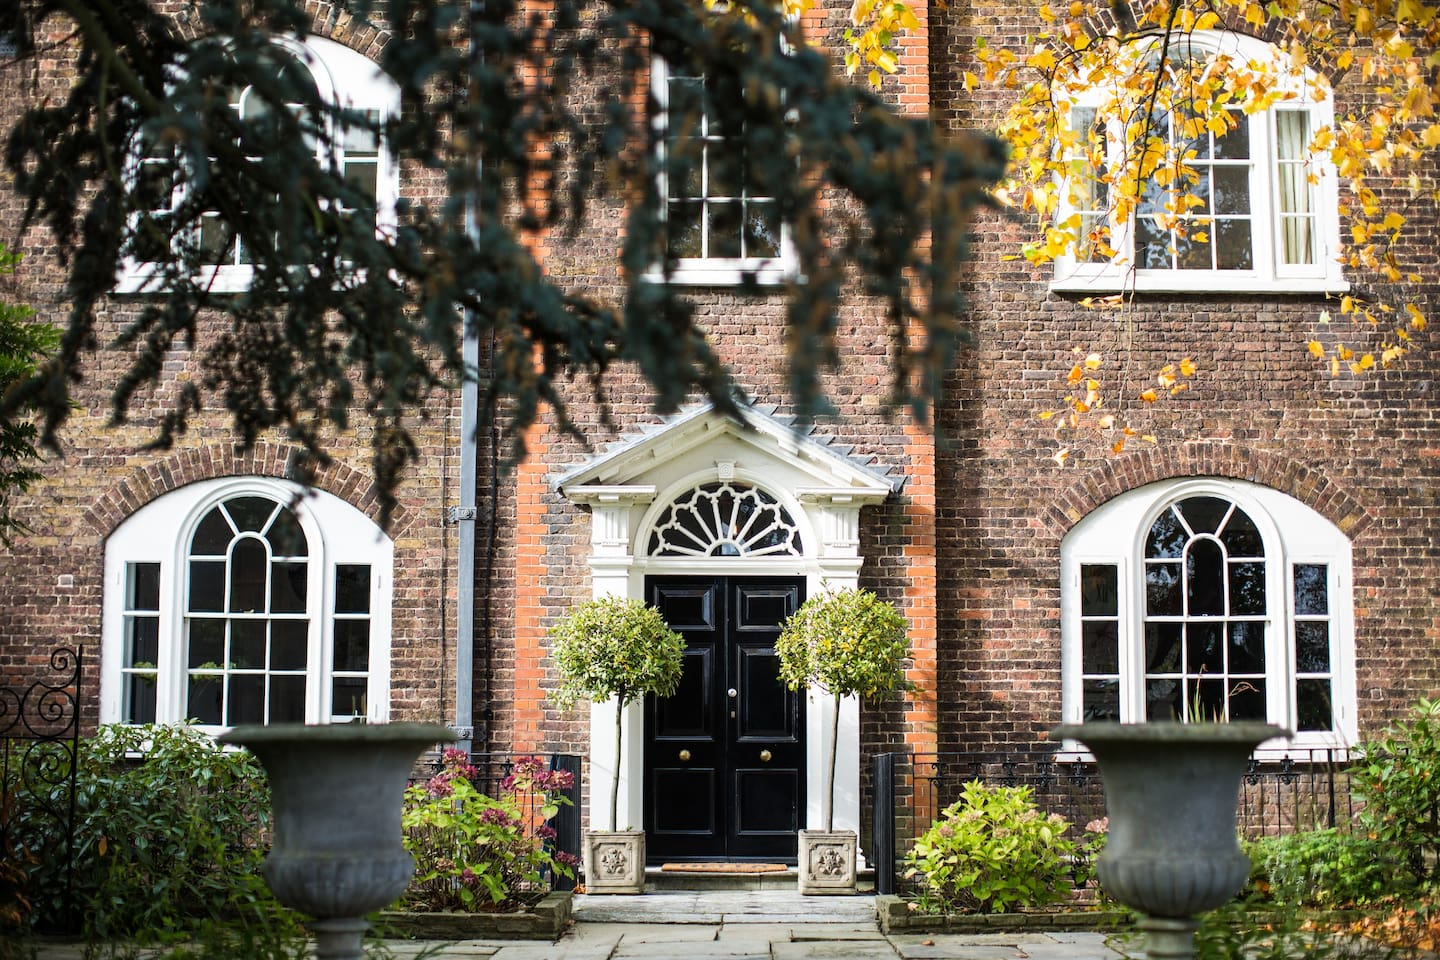 5 Beds Georgian House Next To Hampton Court Palace Houses For Rent In East Molesey England United Kingdom